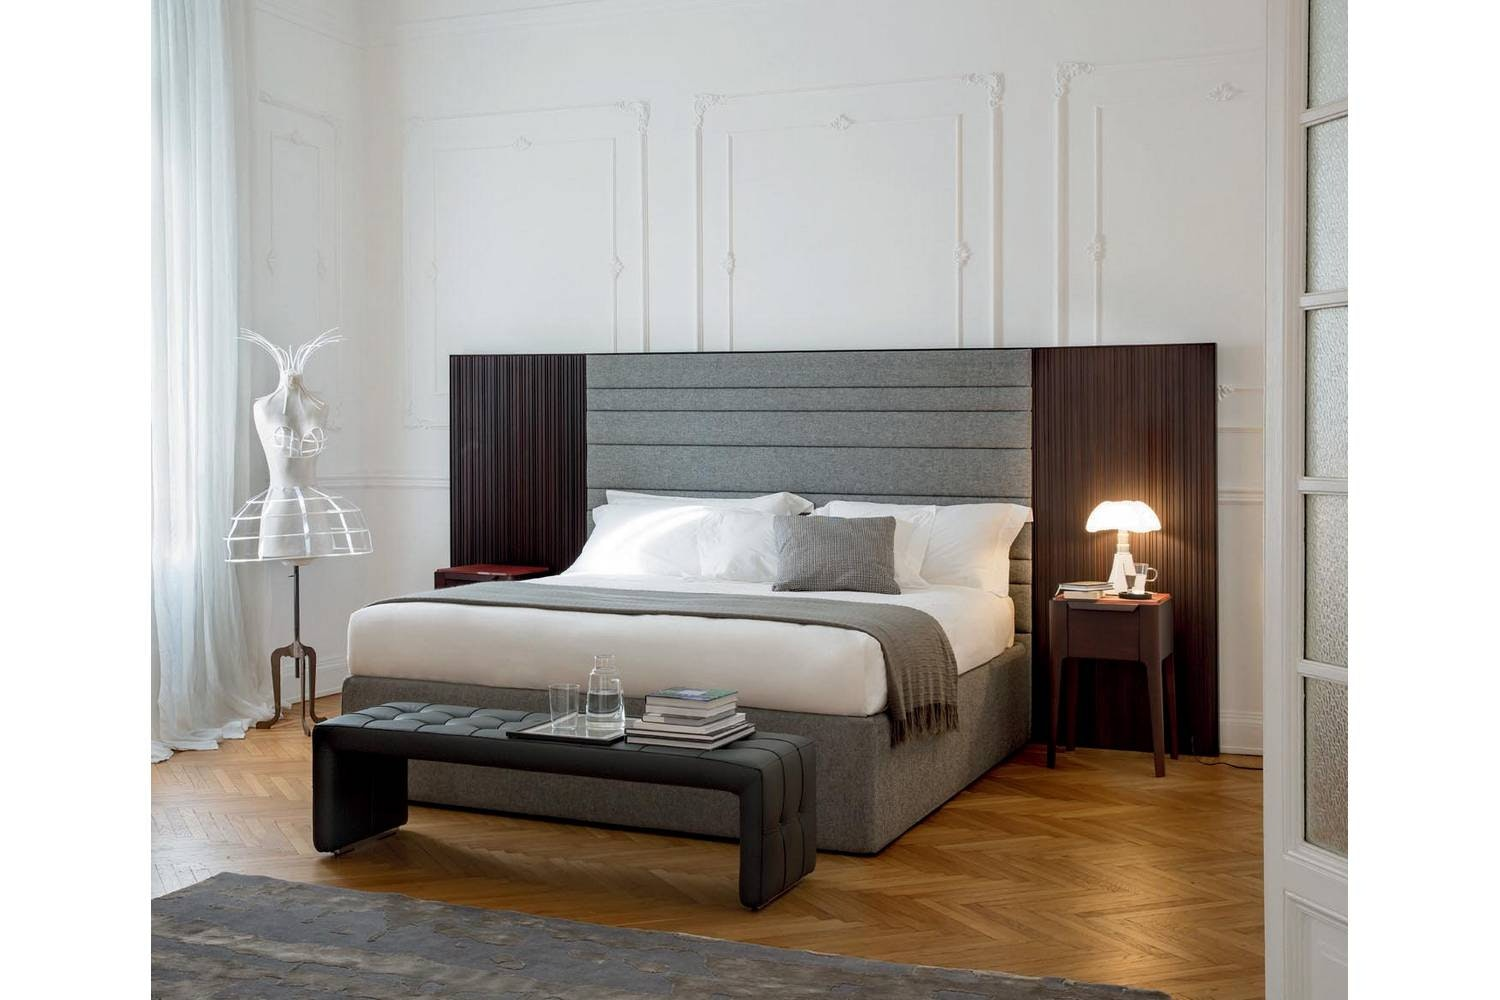 Boheme Bed by M. Marconato - T. Zappa for Porada